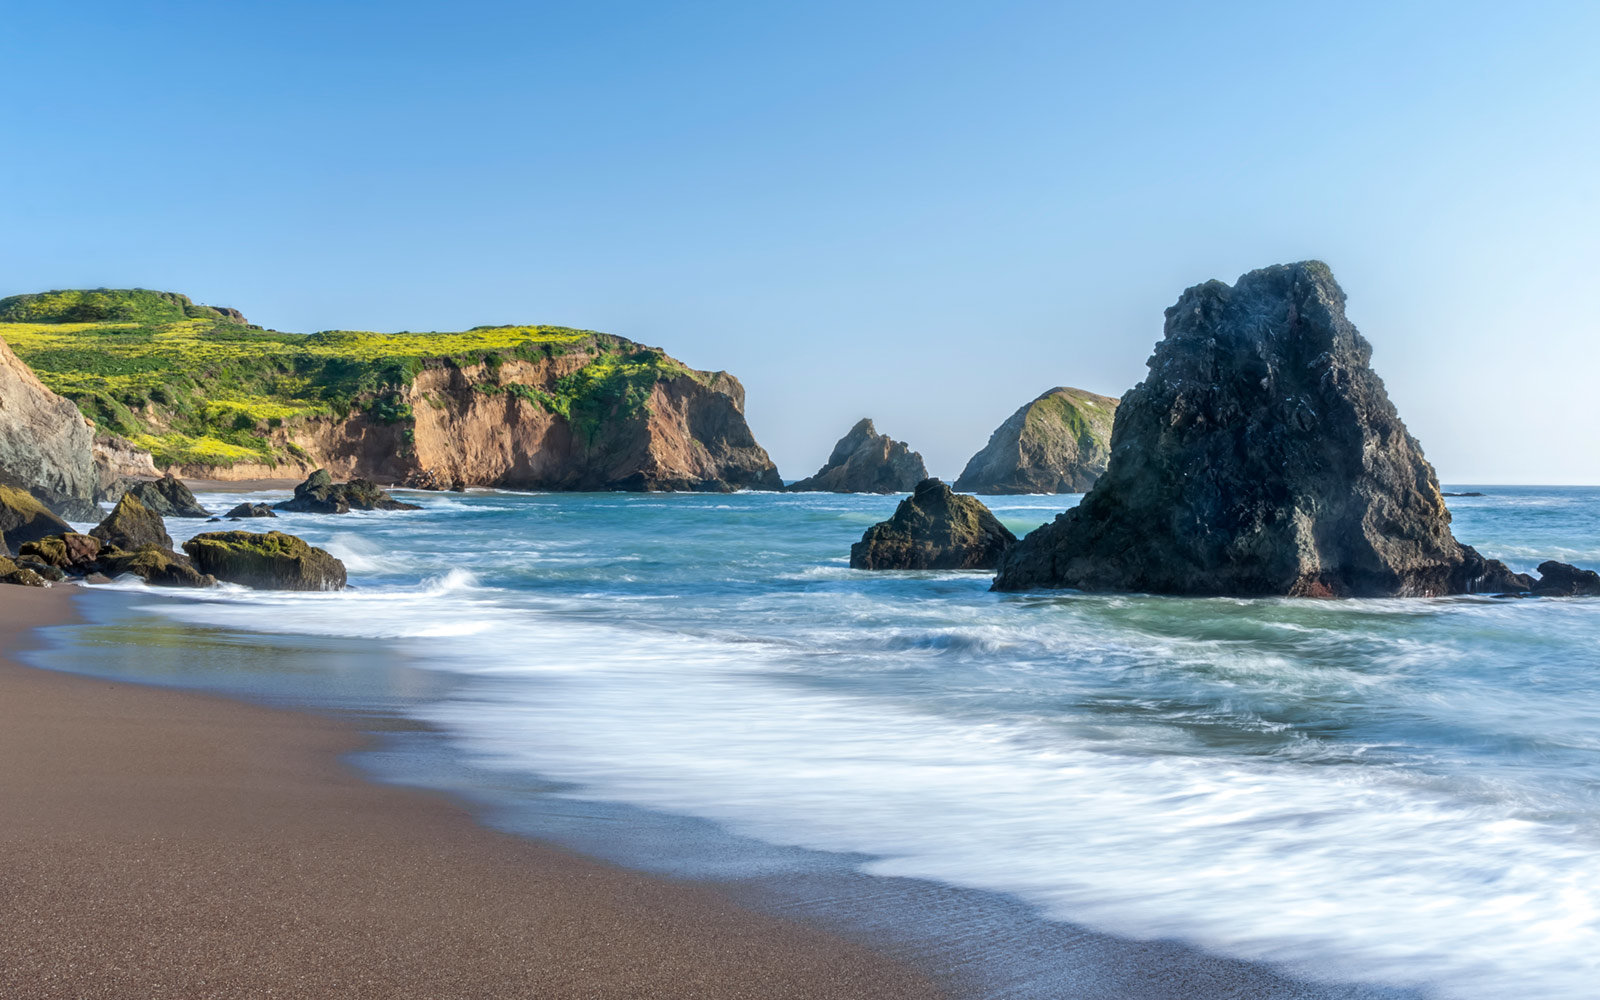 Rodeo Beach, California